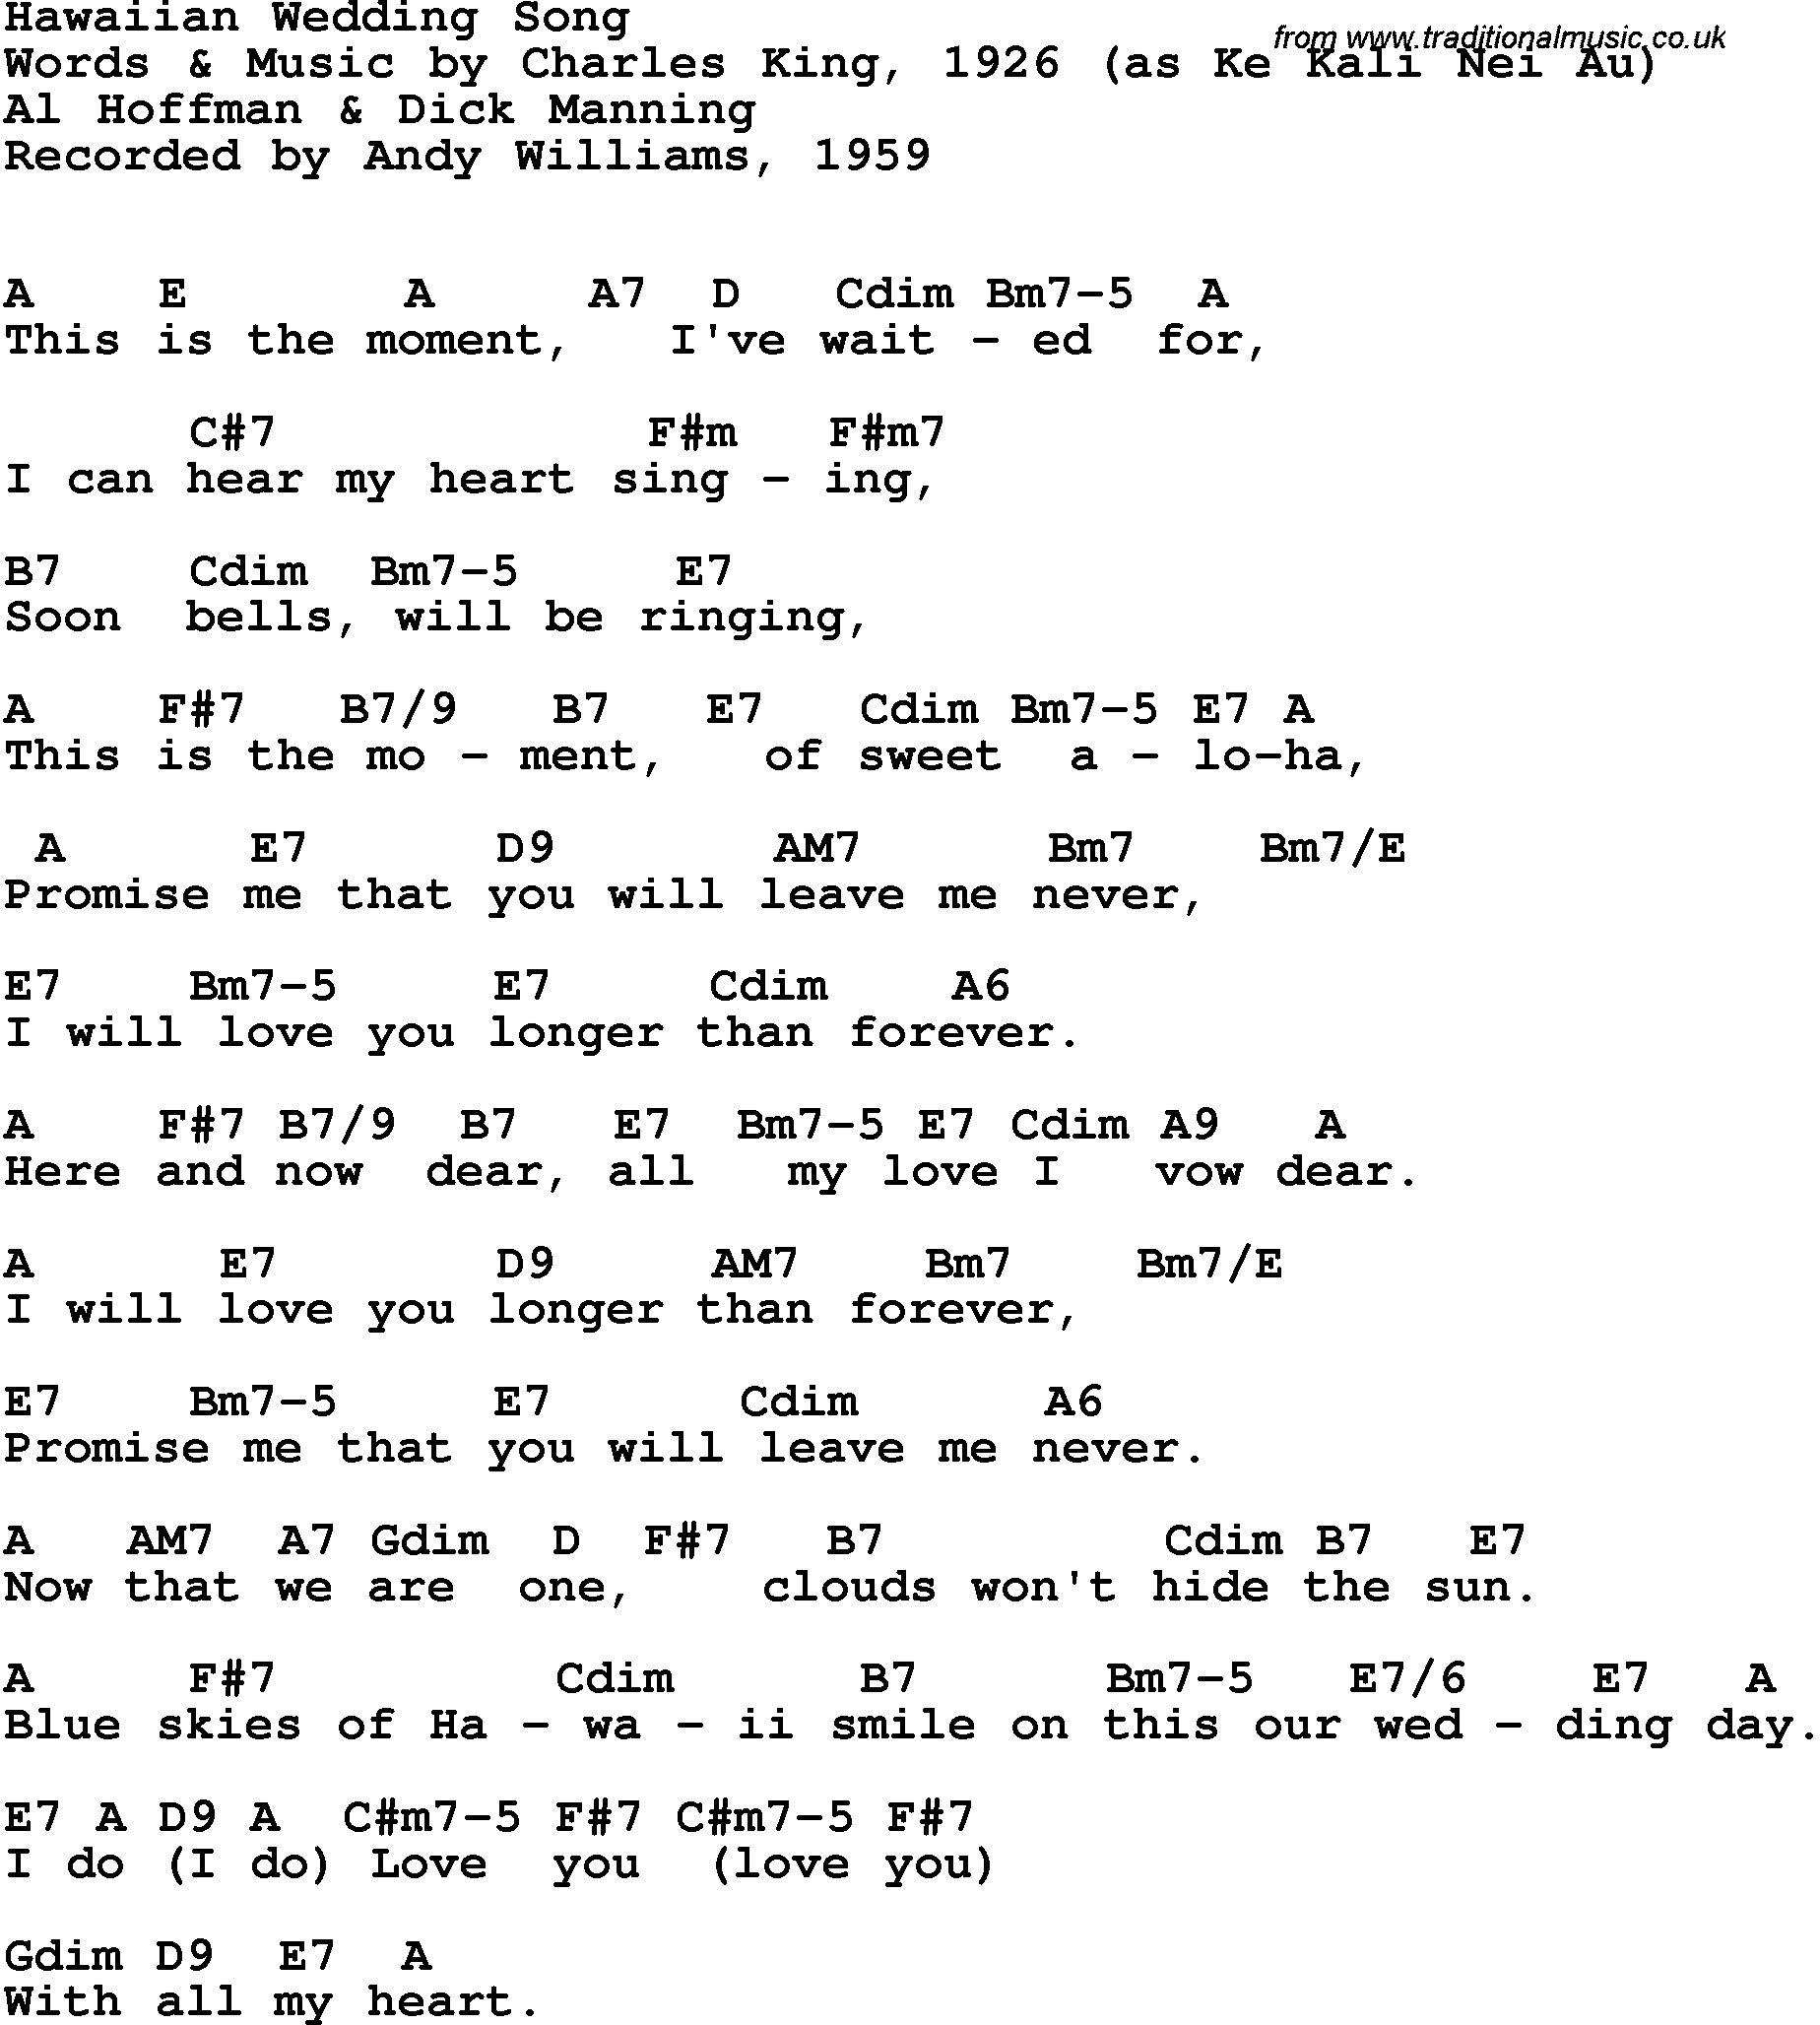 Hawaiian_Wedding_Song-Andy_Williams_1959.png